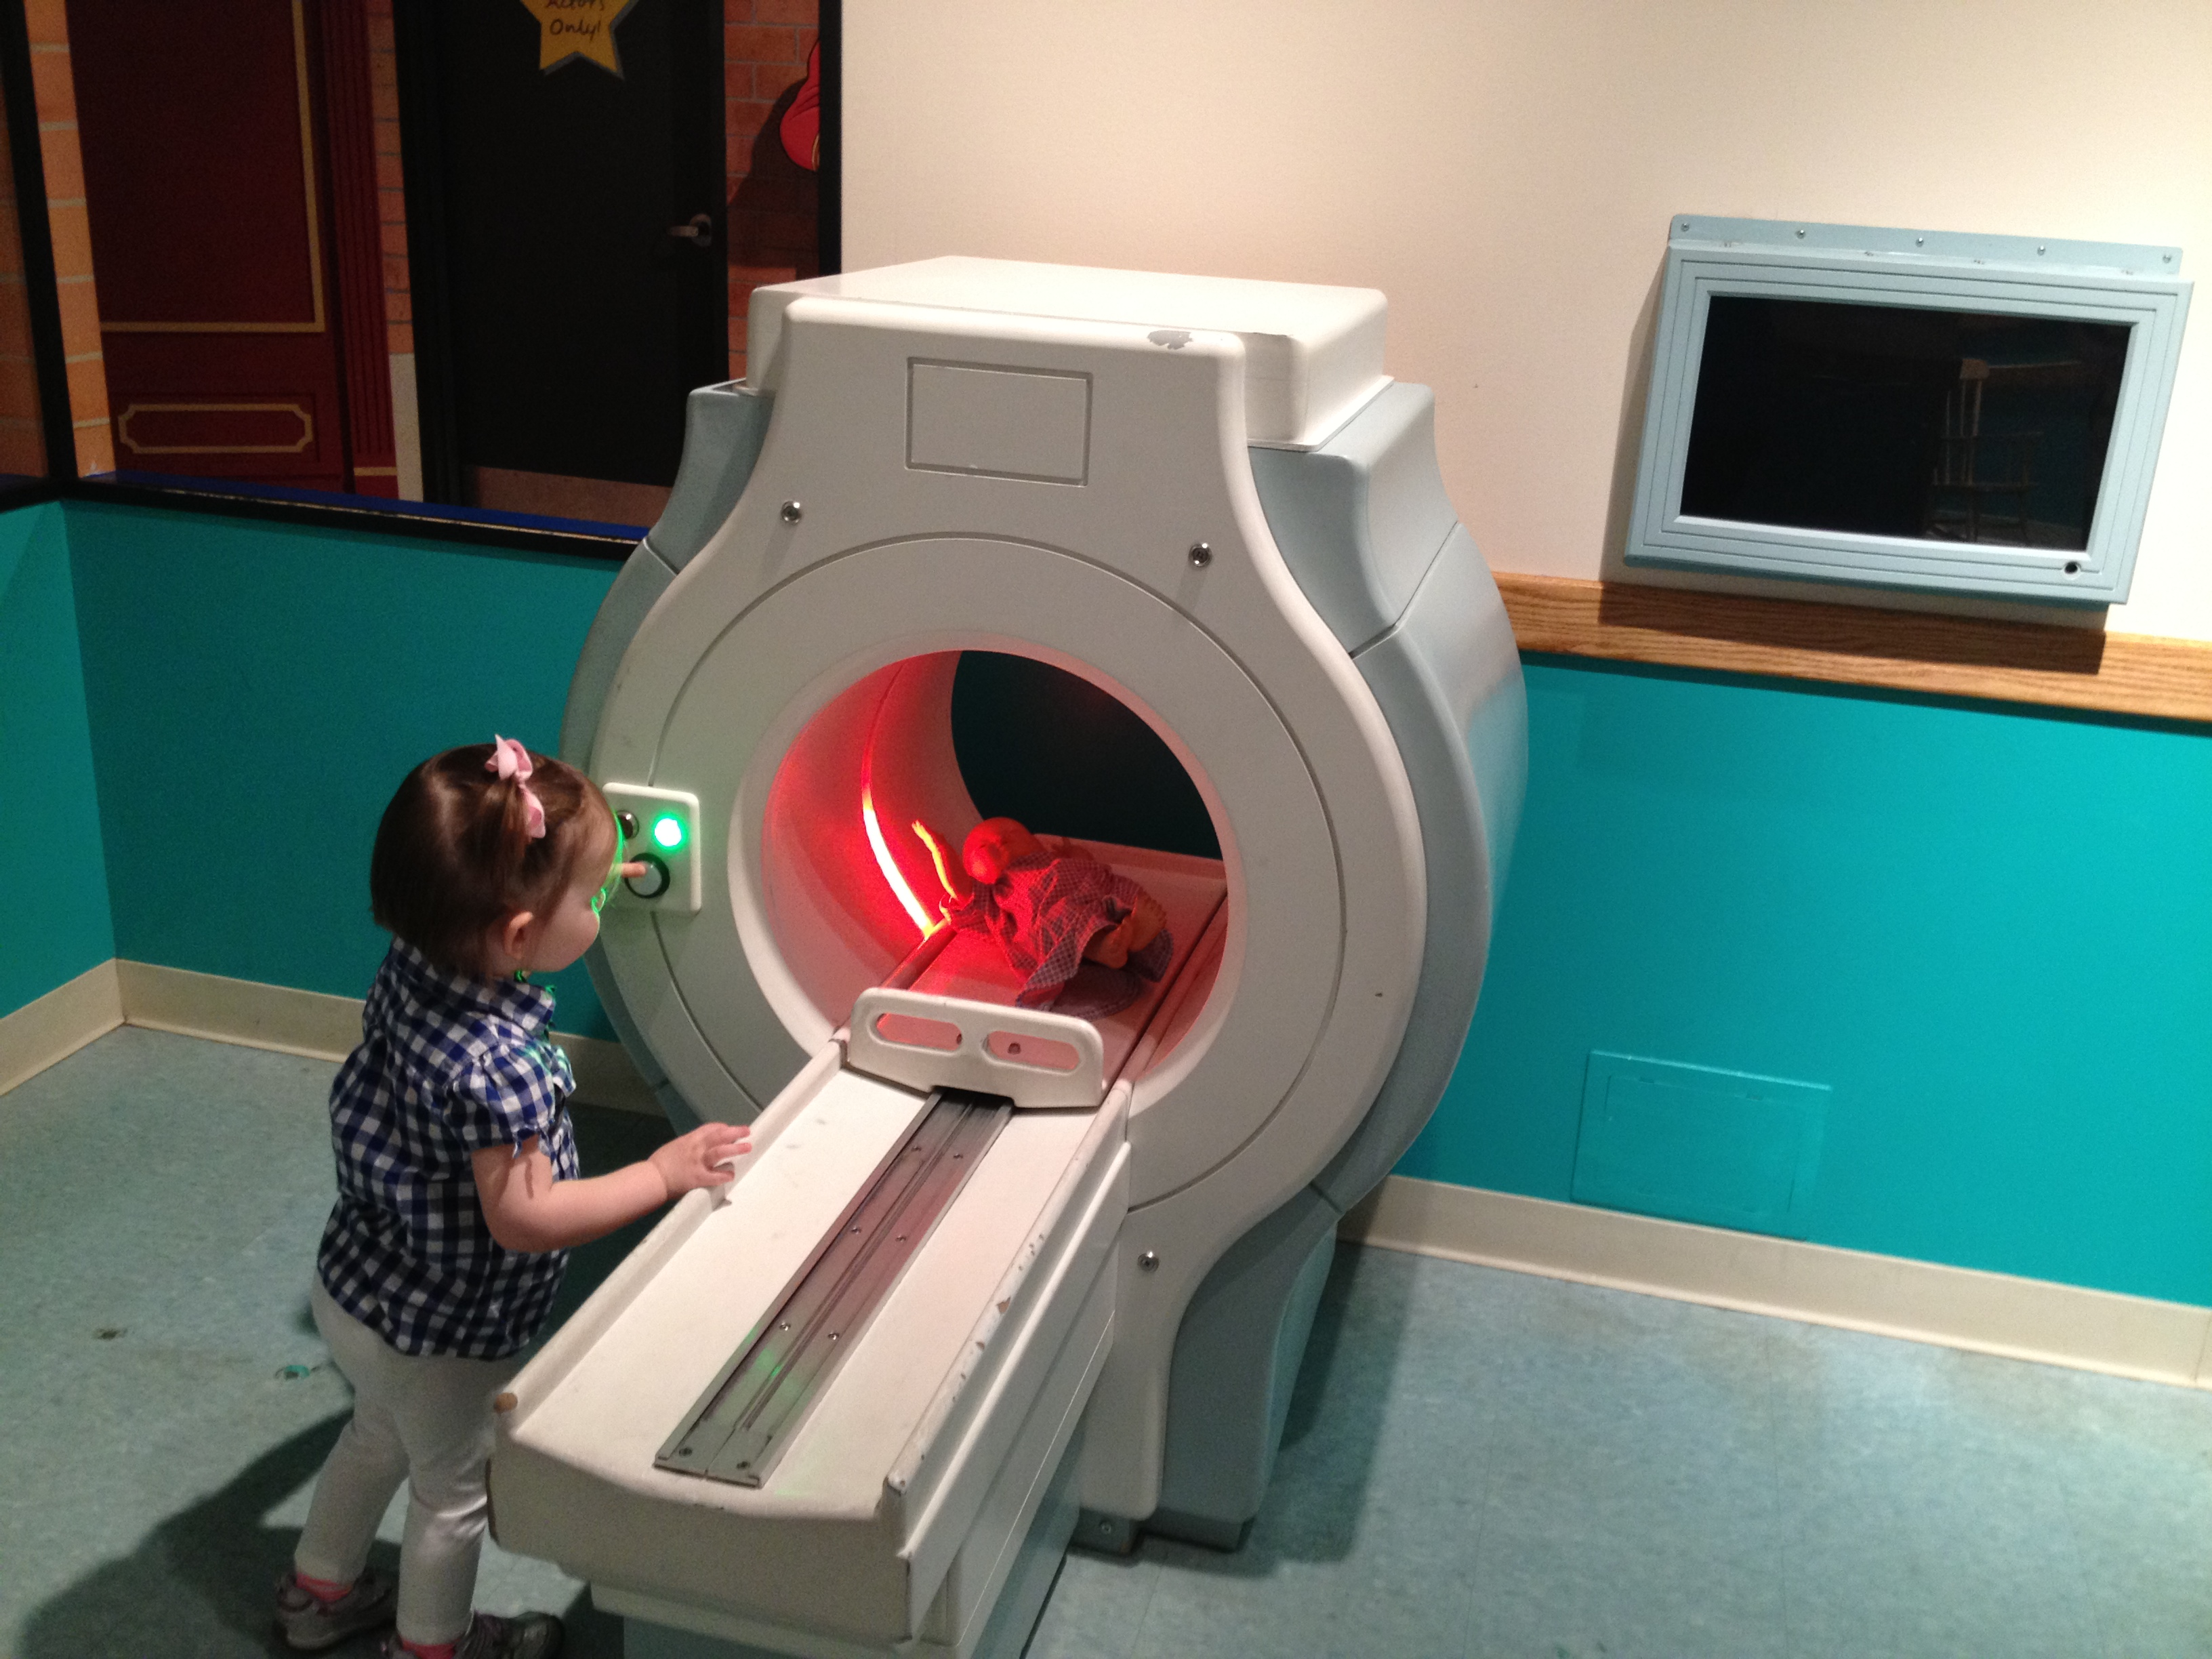 what are some future applications of pet scans